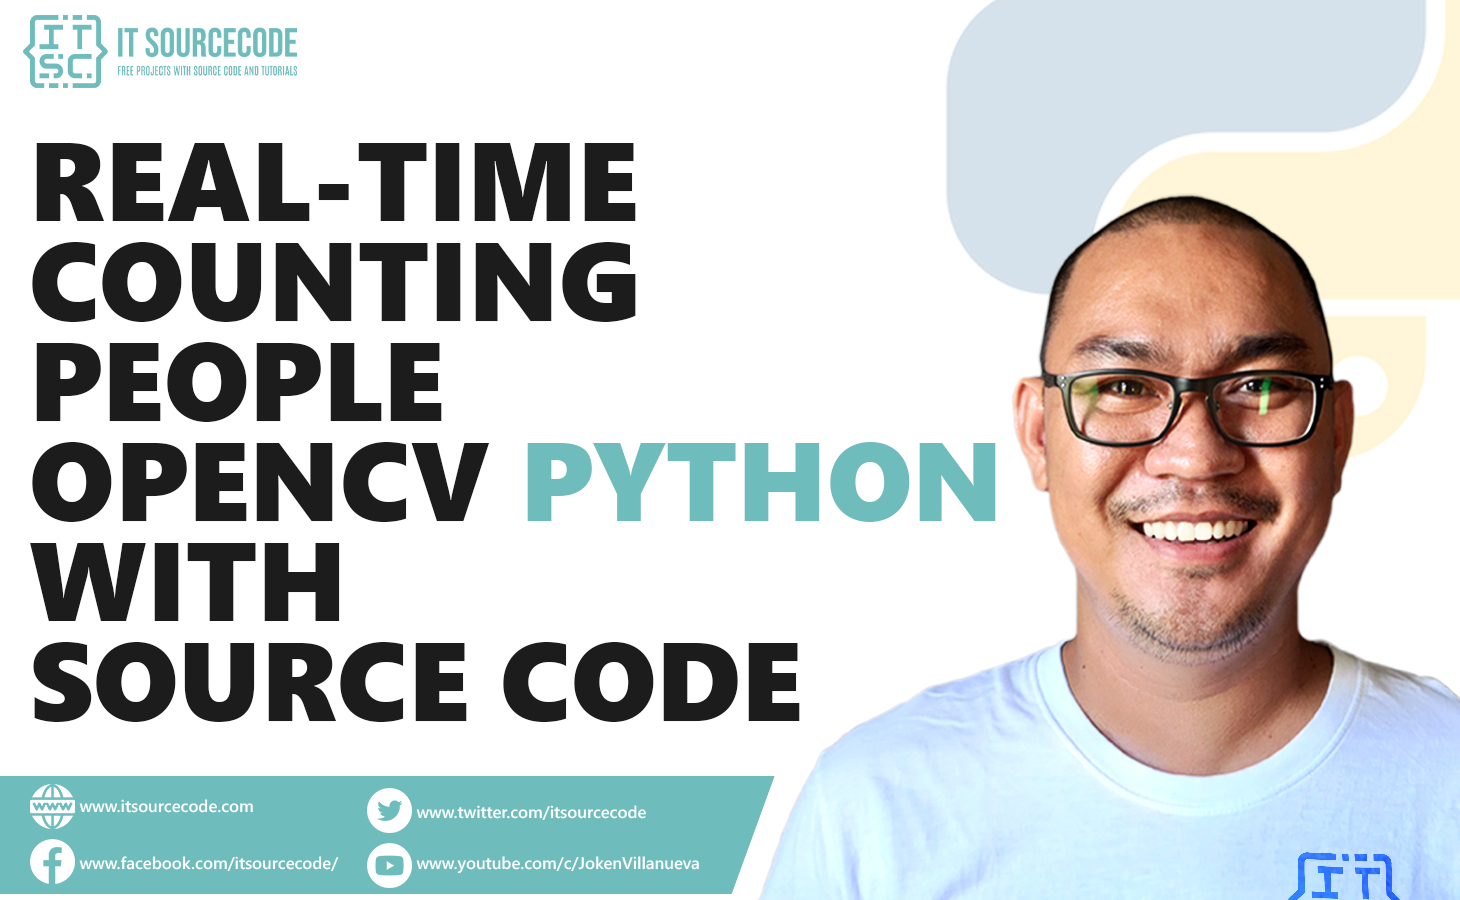 Real-Time Counting People OpenCV Python With Source Code